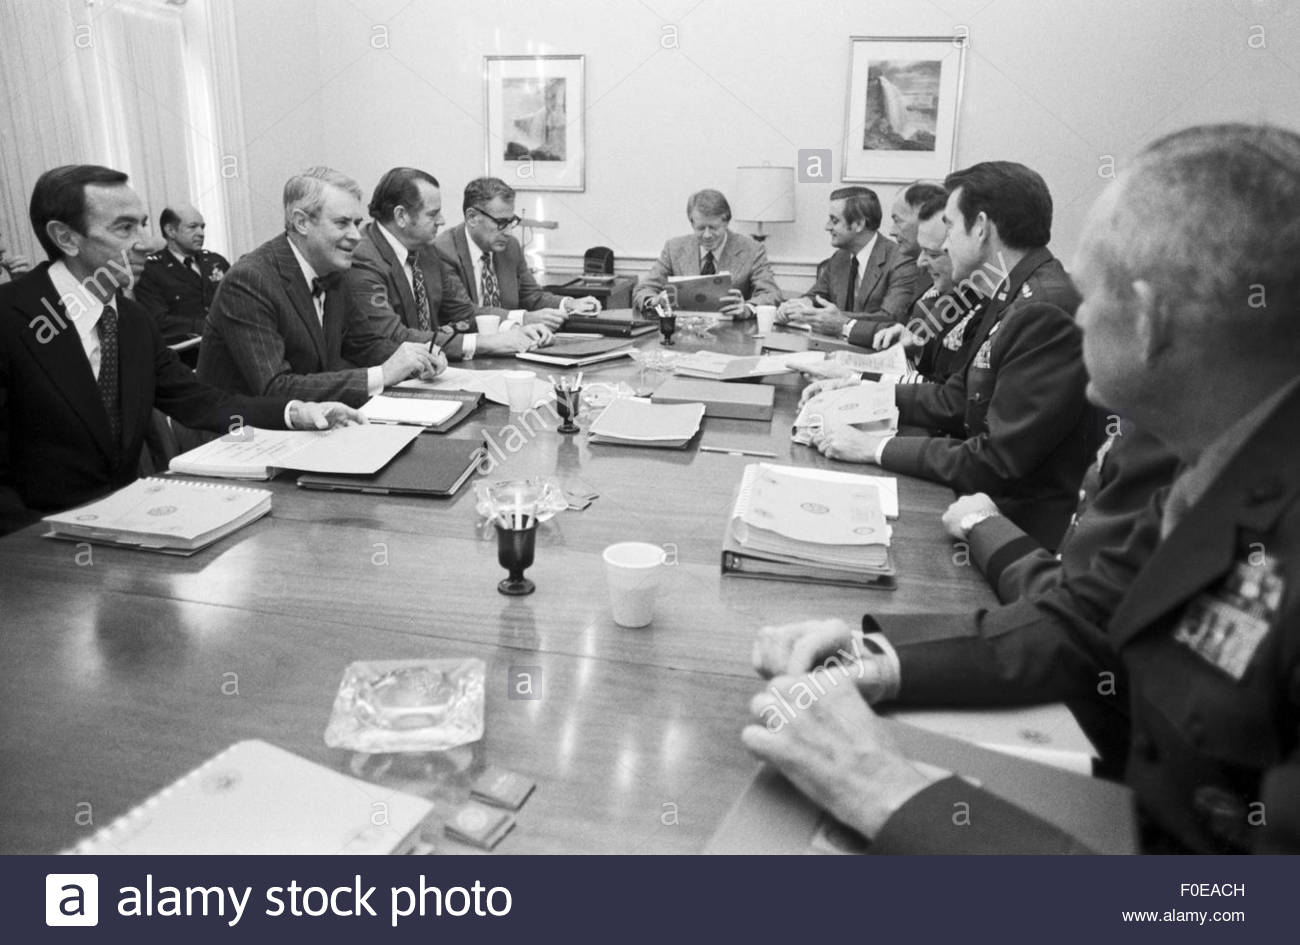 June 1, 1977 - President Jimmy Carter at a meeting of his cabinet ...